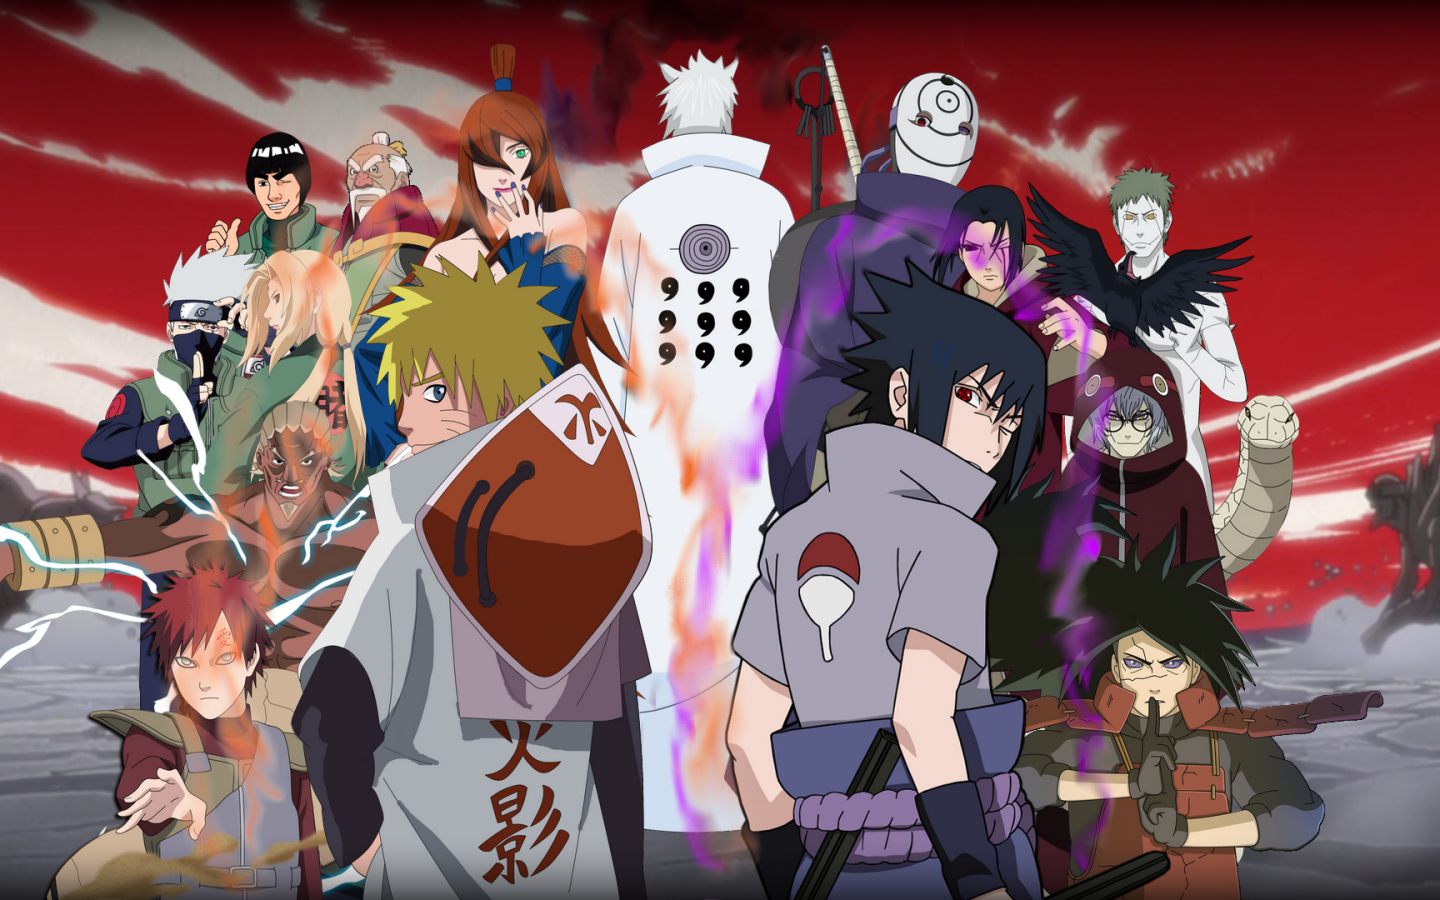 Naruto Characters In Real World Background Wallpaper: Iconic Opening And Endings In Naruto Anime